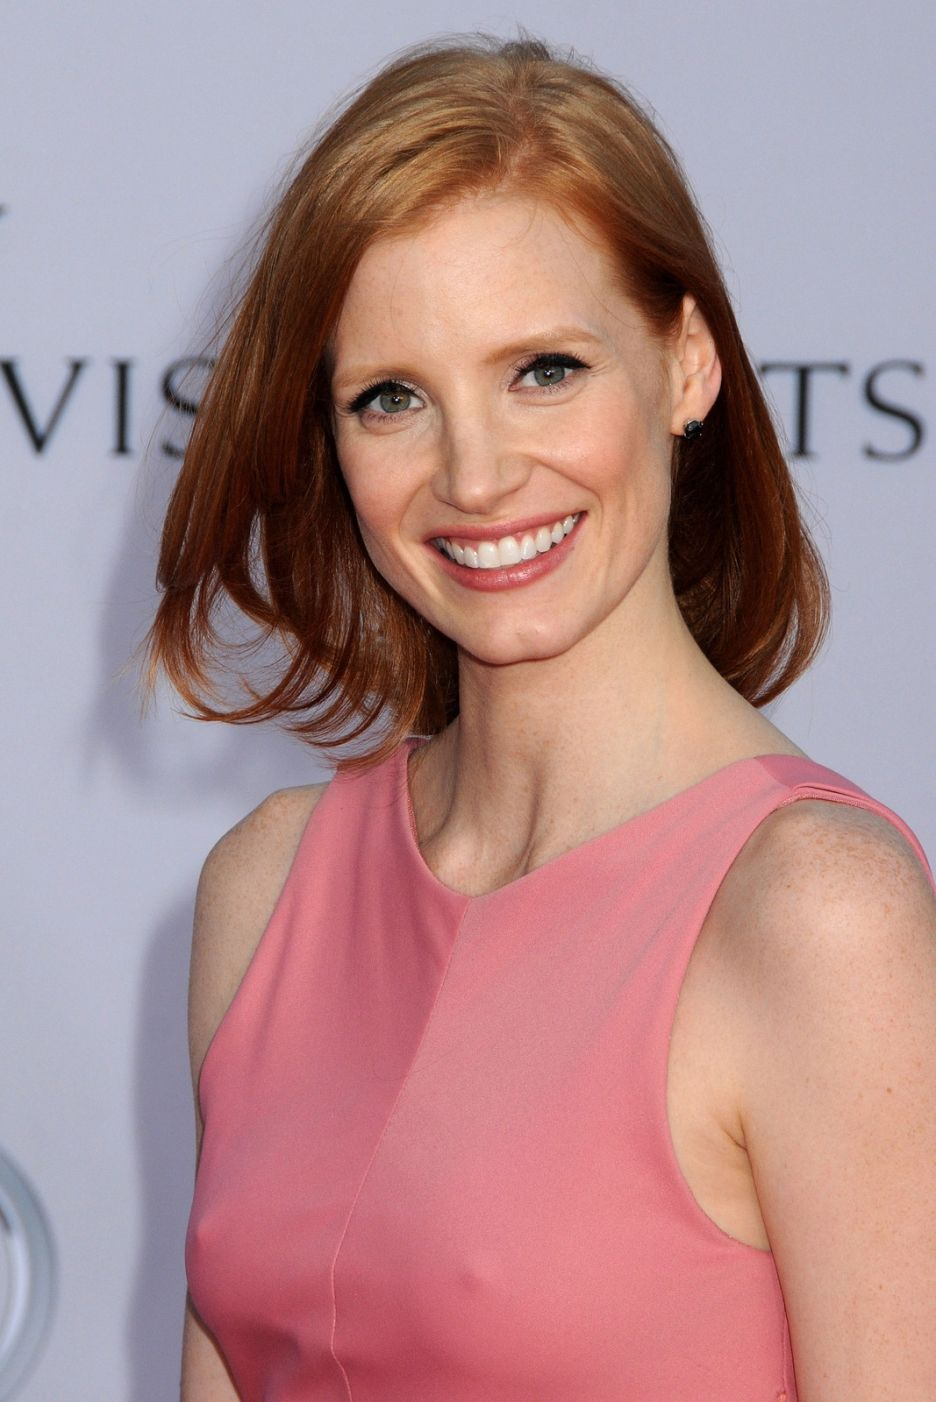 jessica chastain wearing warm pastel pink also a pure autumn and jessica chastain wearing warm pastel pink also a pure autumn and tinted autumn colour